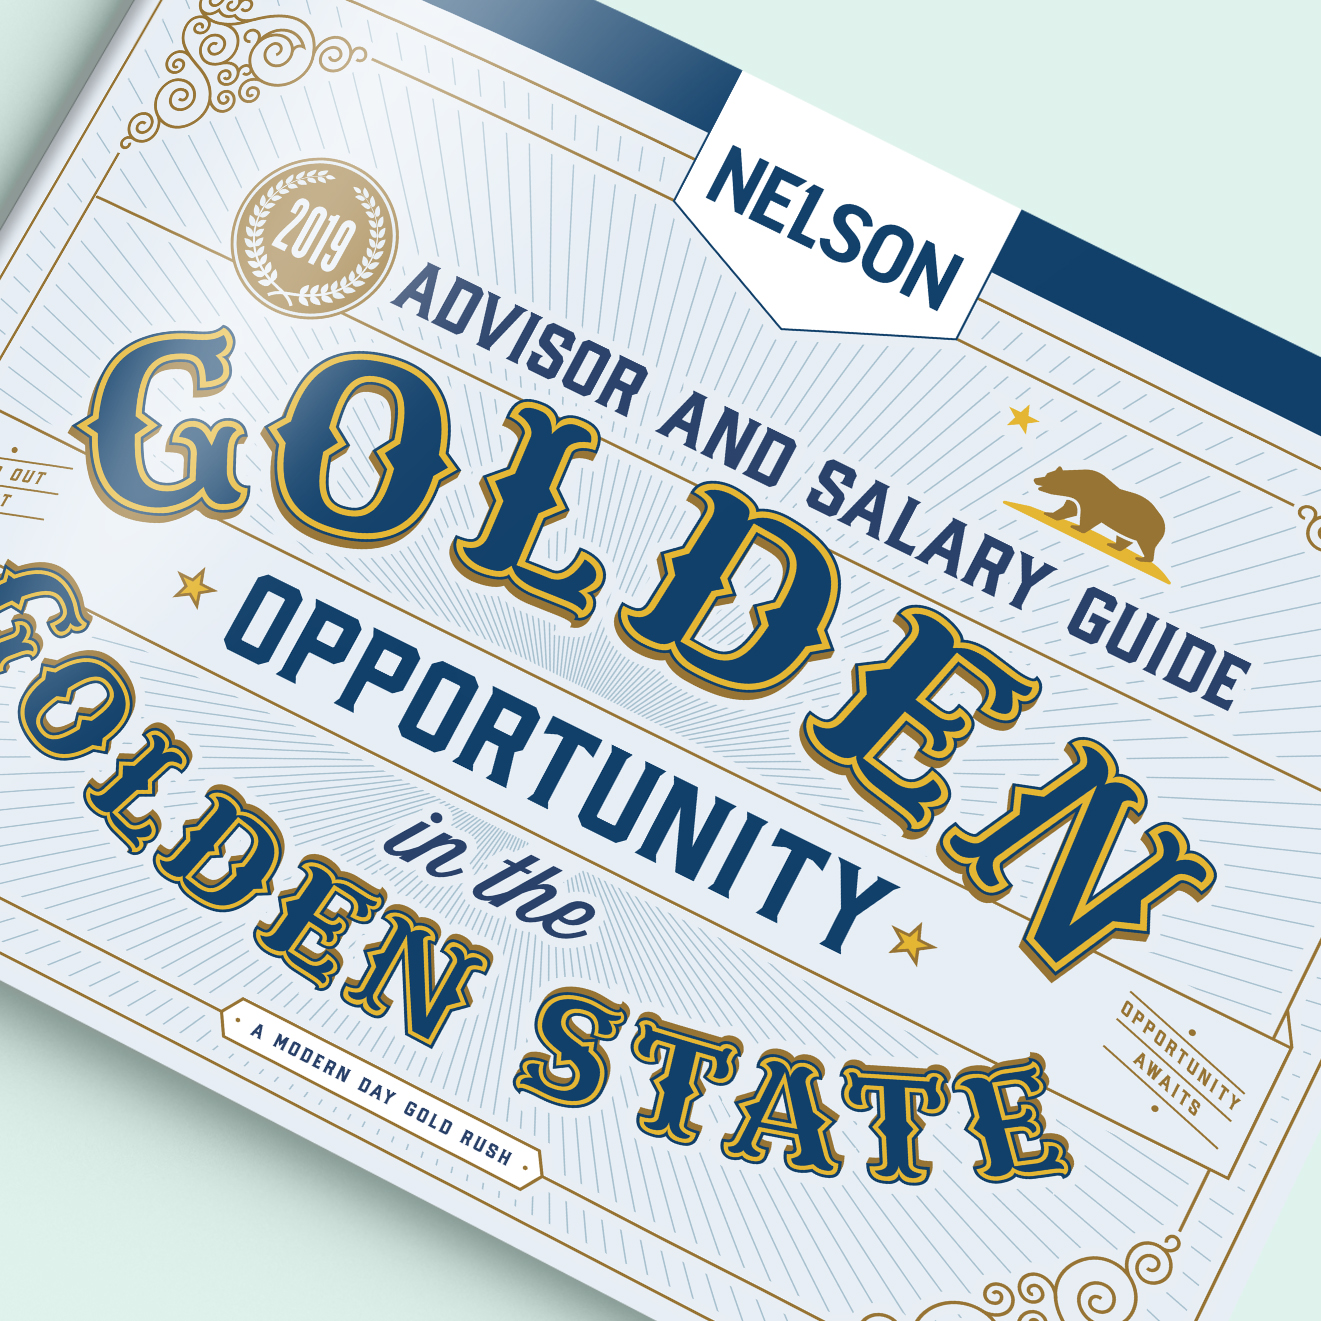 Nelson 2019 Salary Advisor  See More →